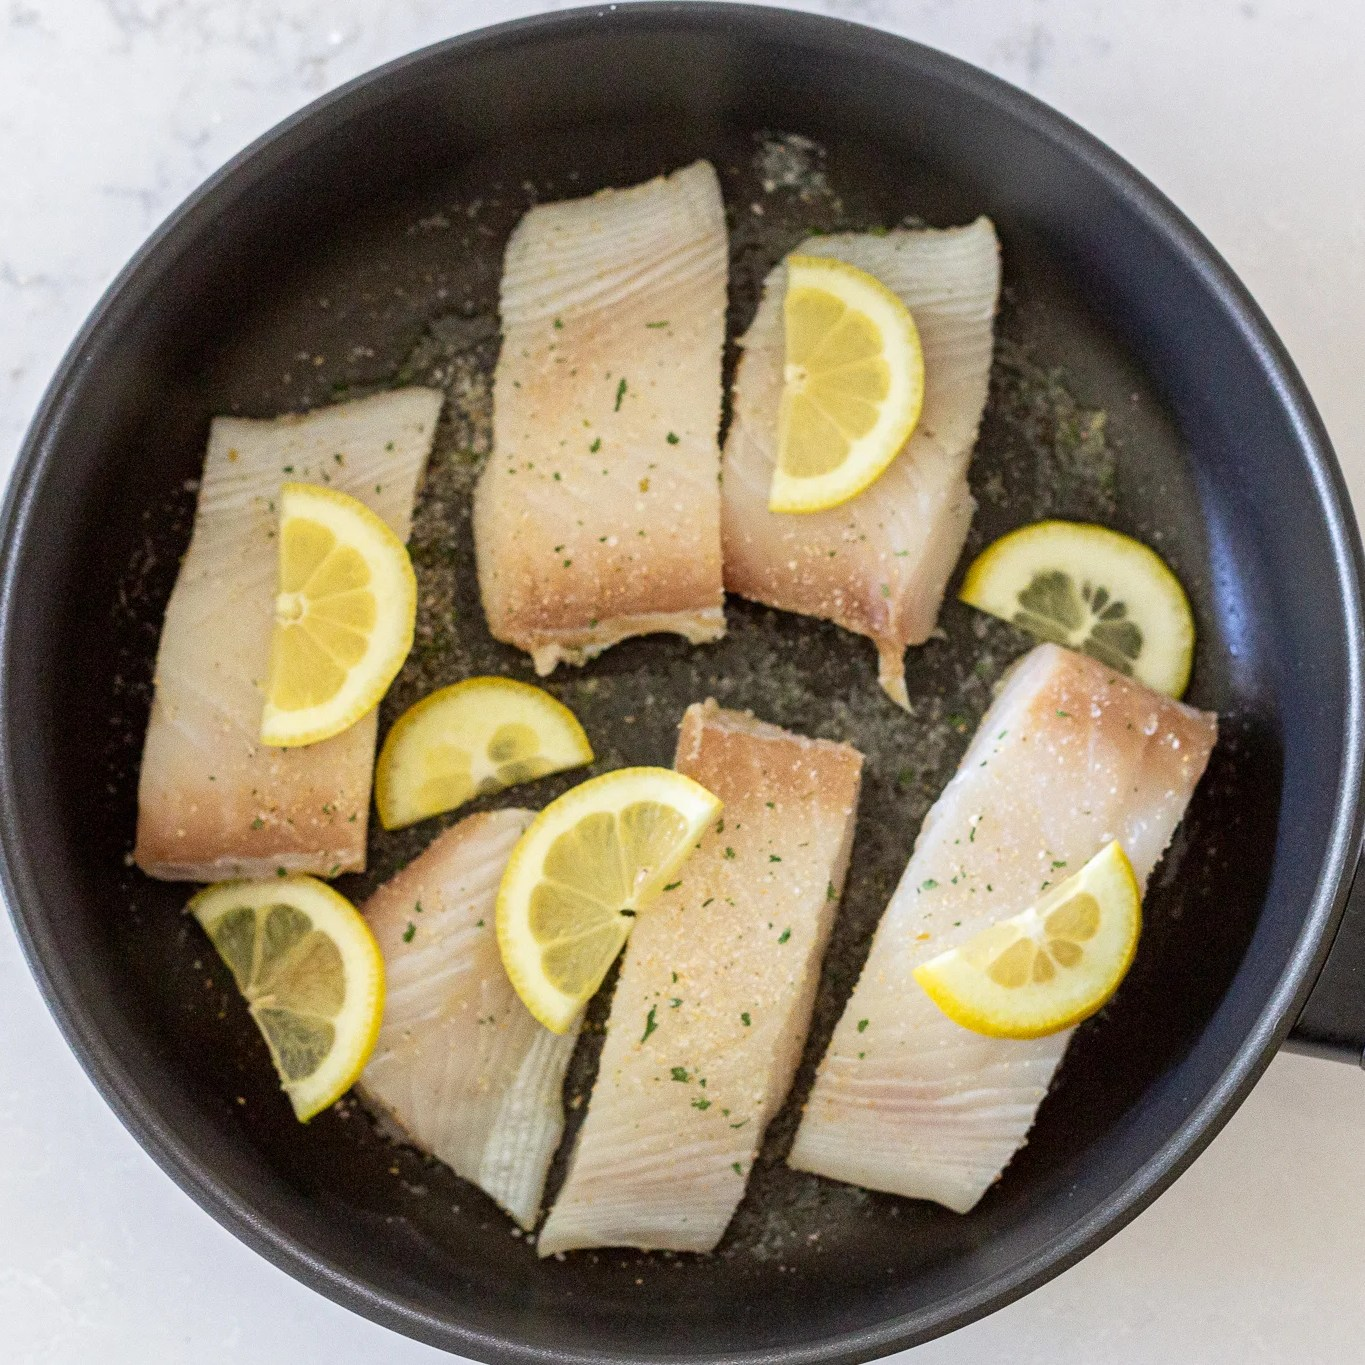 halibut with lemon and seasoning in a pan